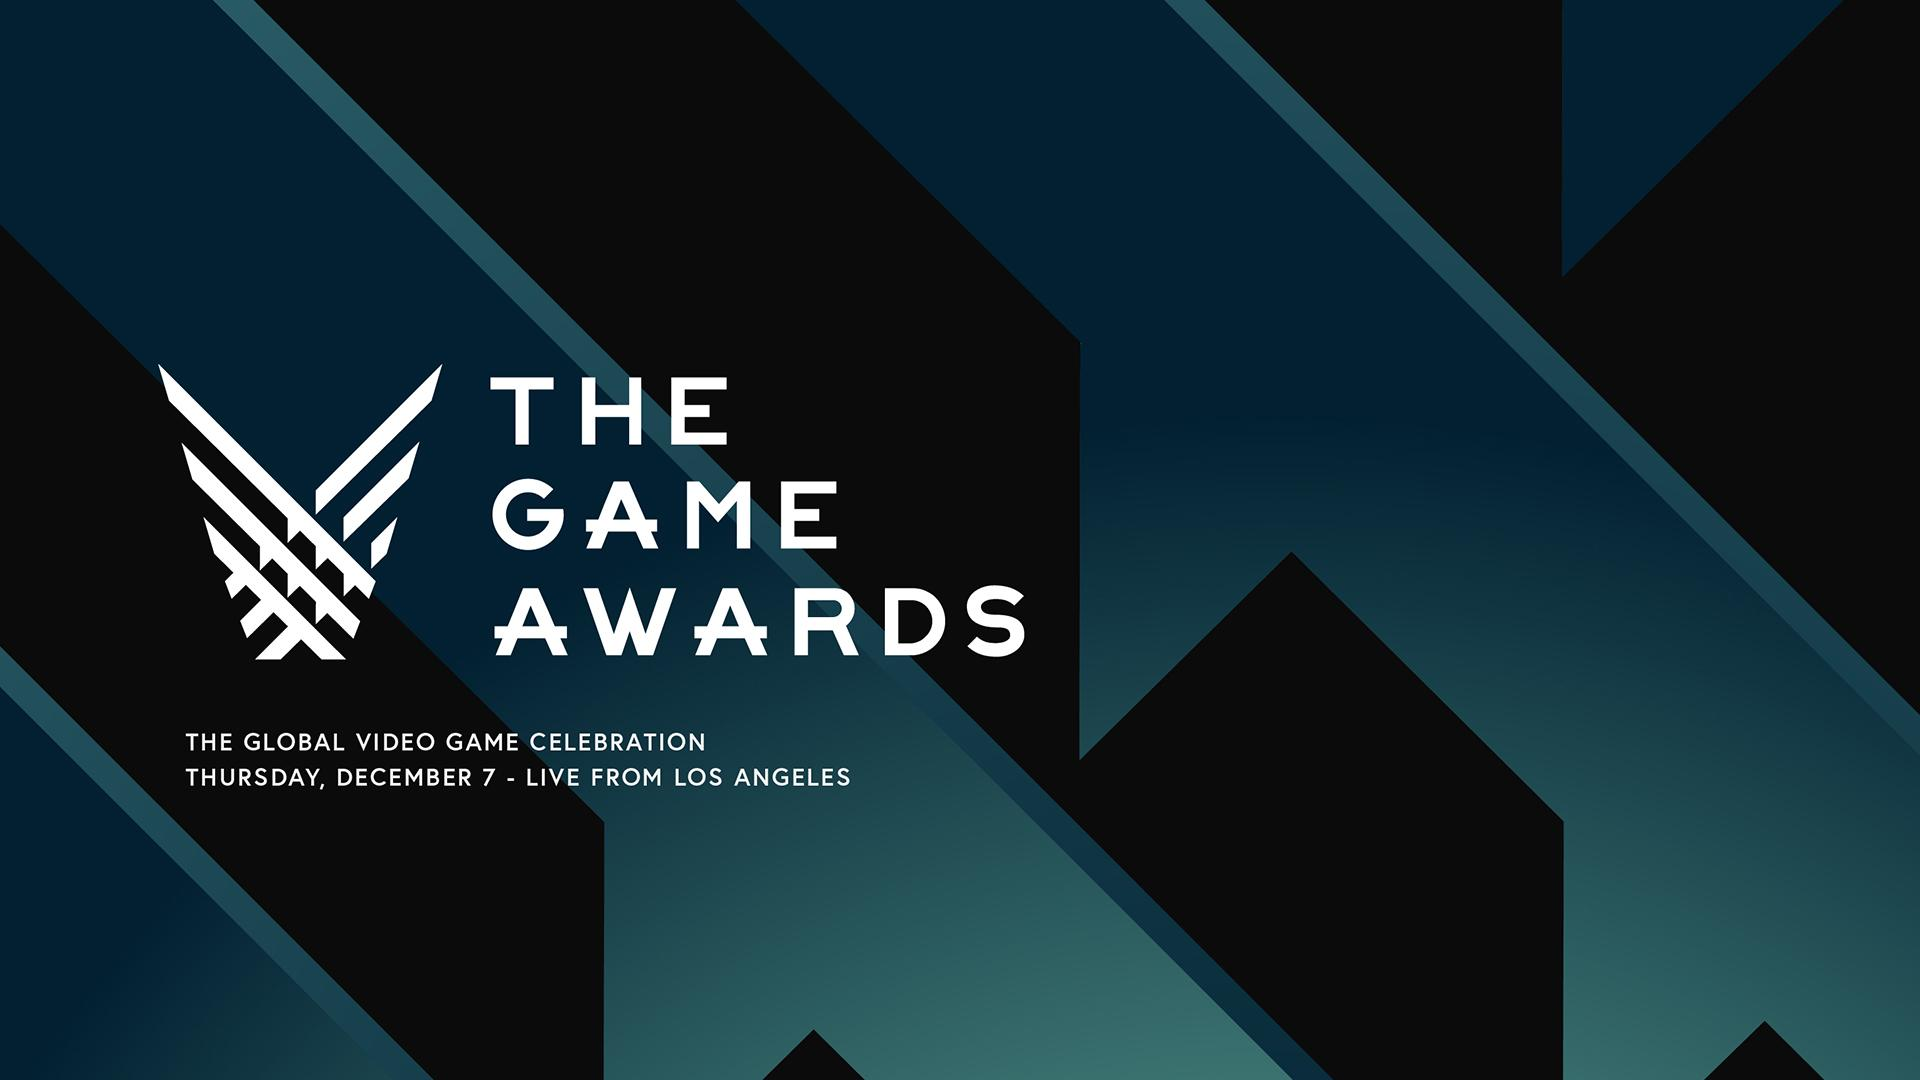 Cartel oficial de The Game Awards 2017